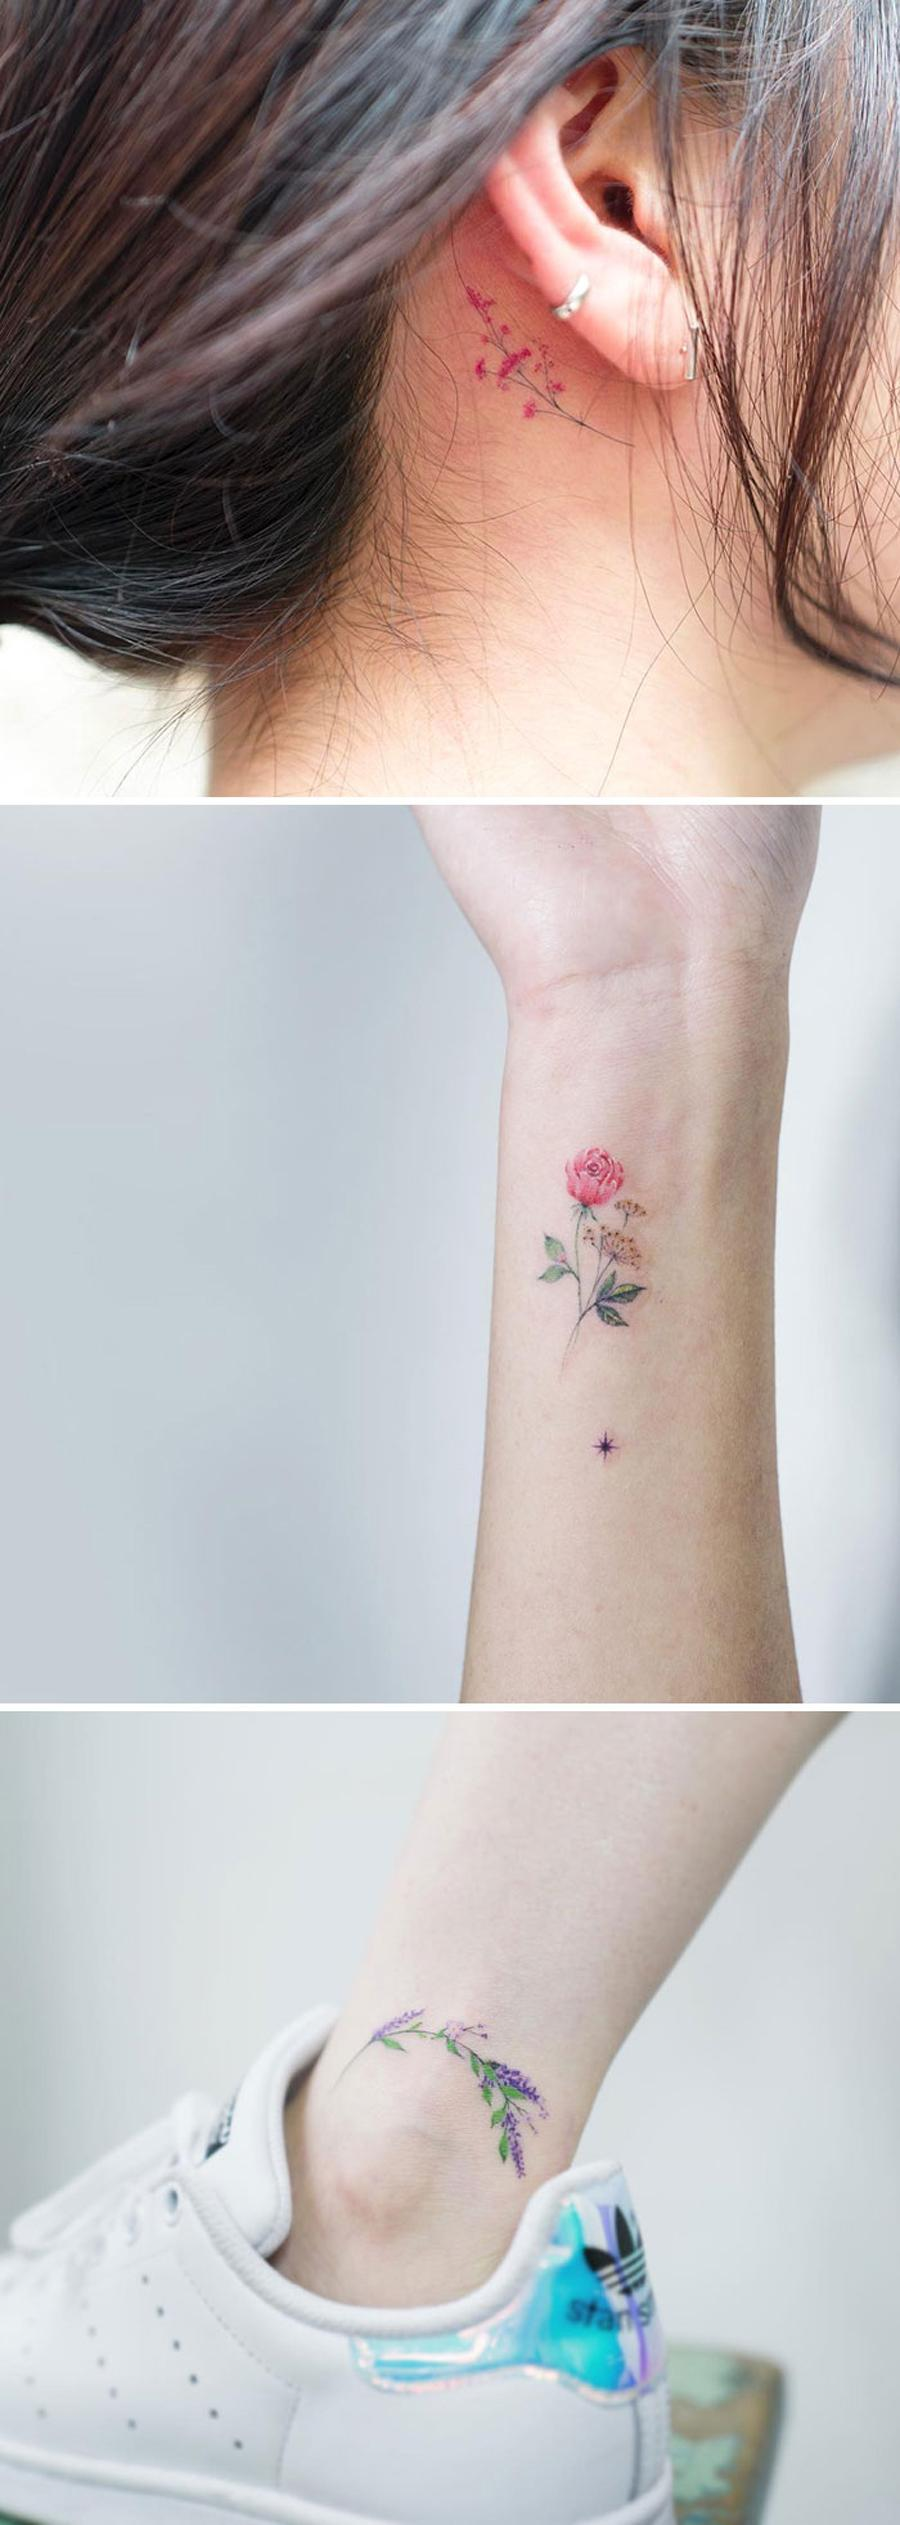 The Floral Tattoo